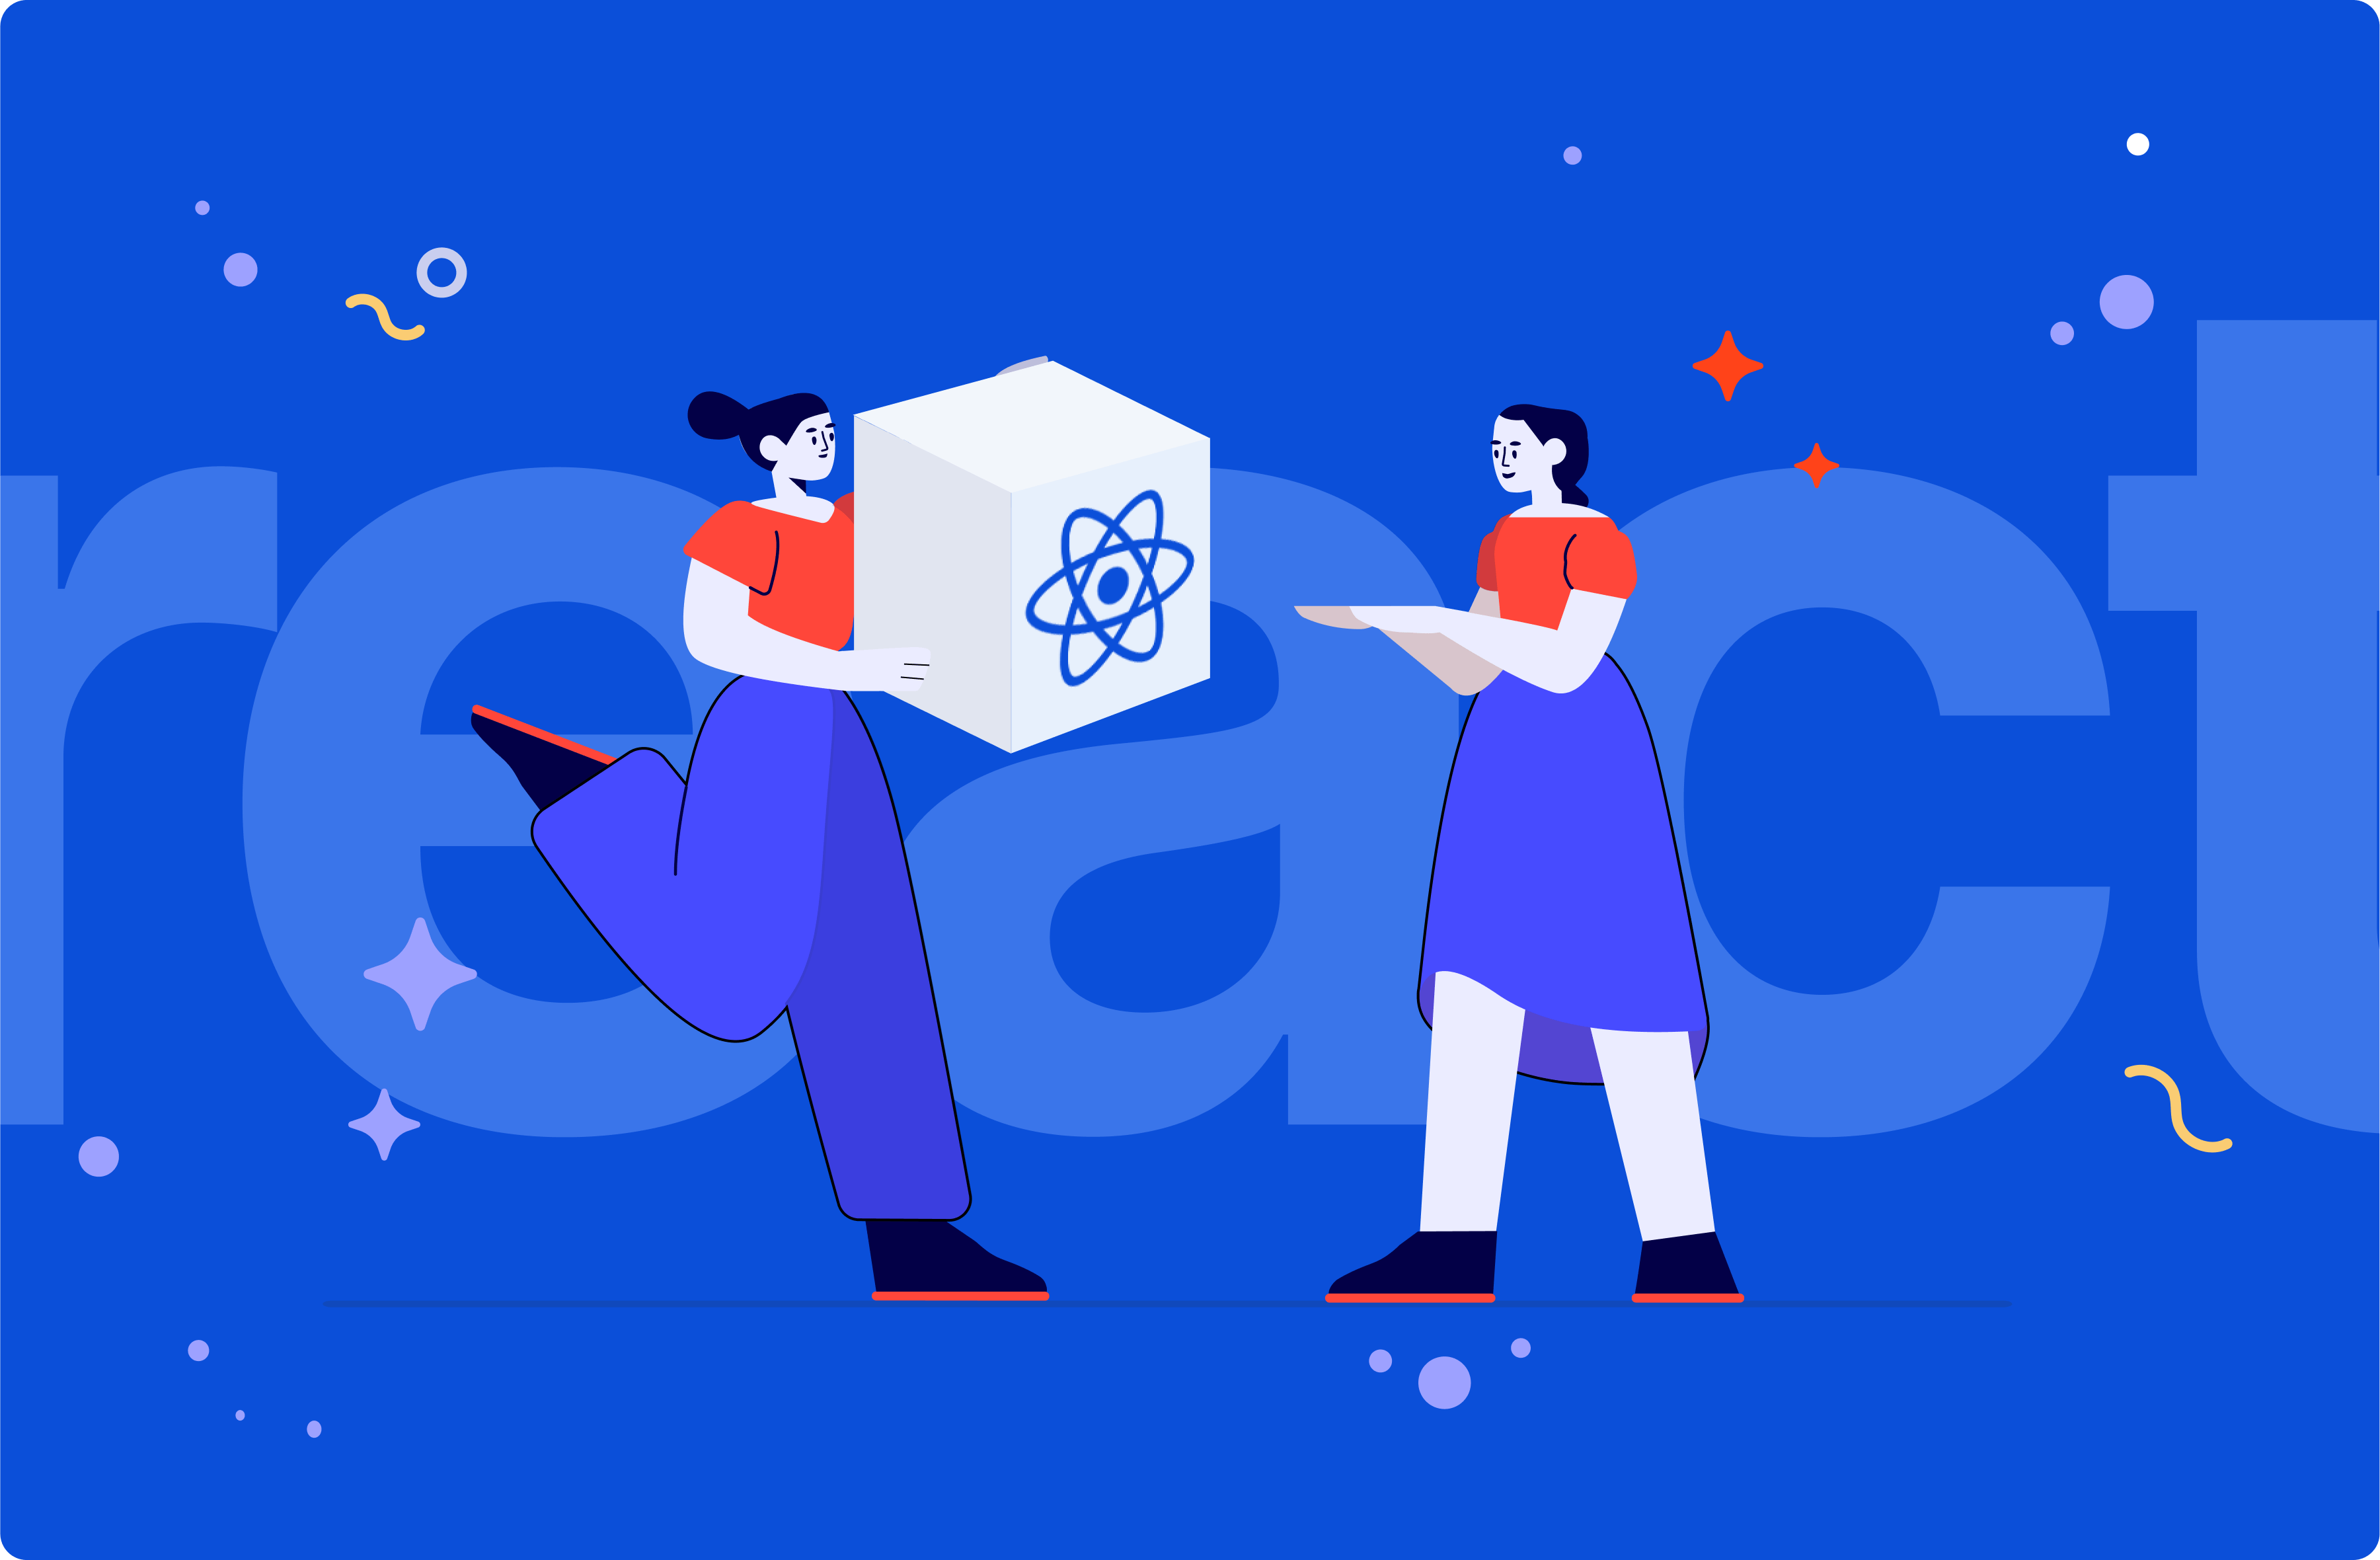 Concurrent rendering. Let's take a closer look at React 18 concurrent mode